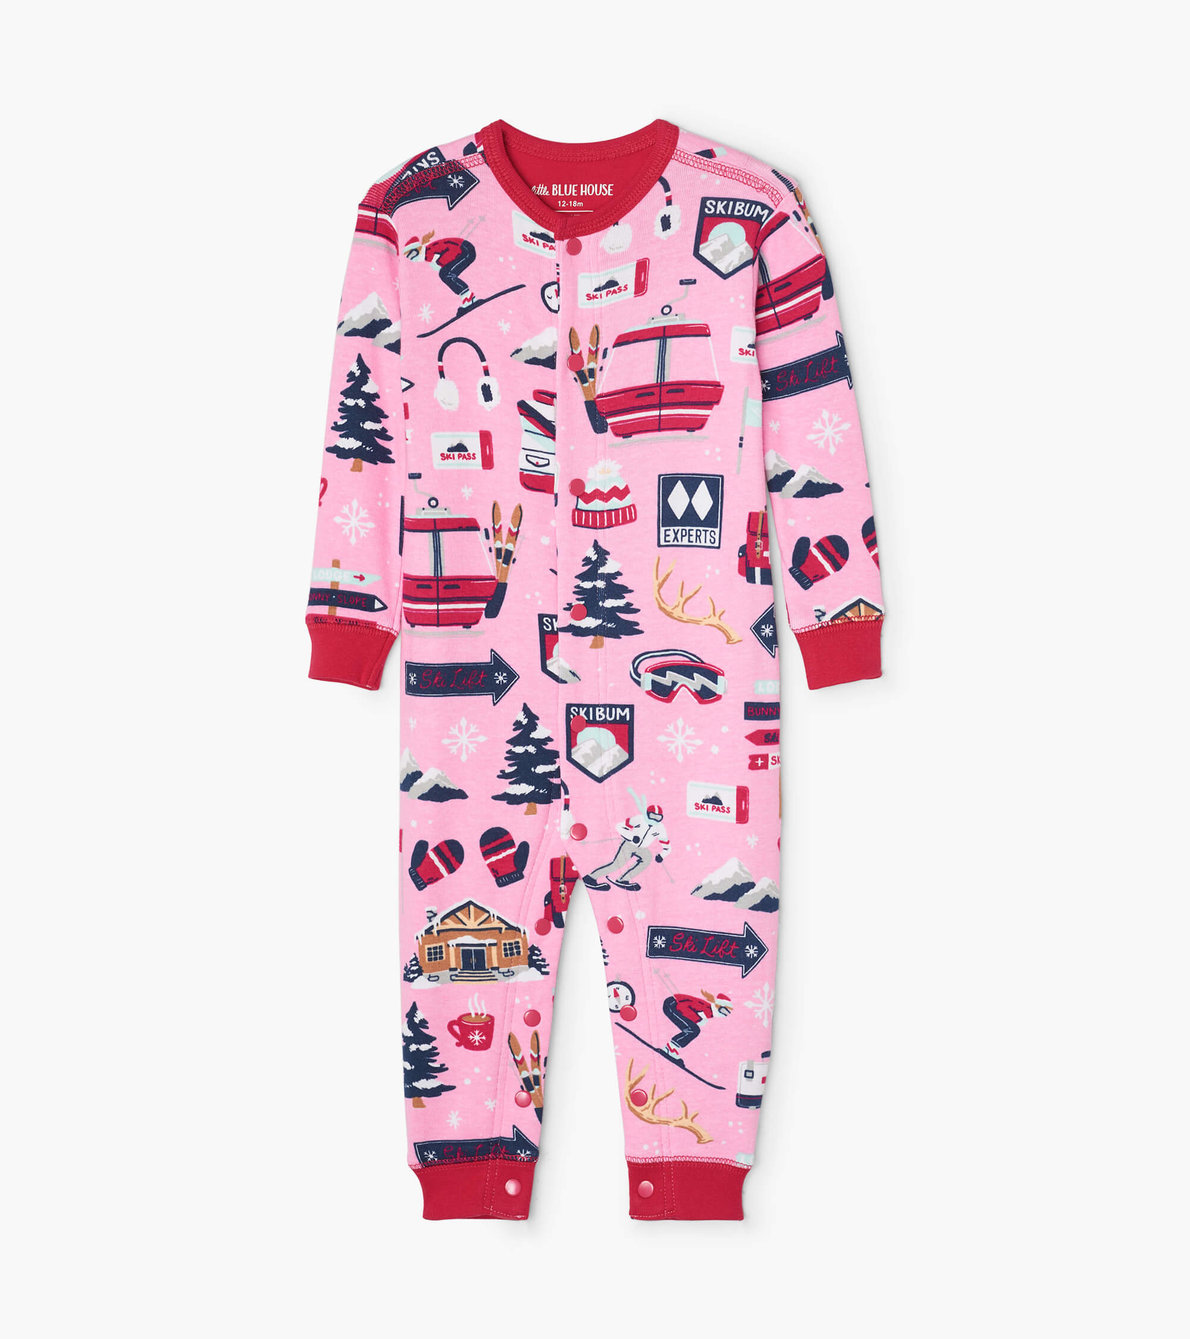 View larger image of Pink Ski Holiday Baby Union Suit